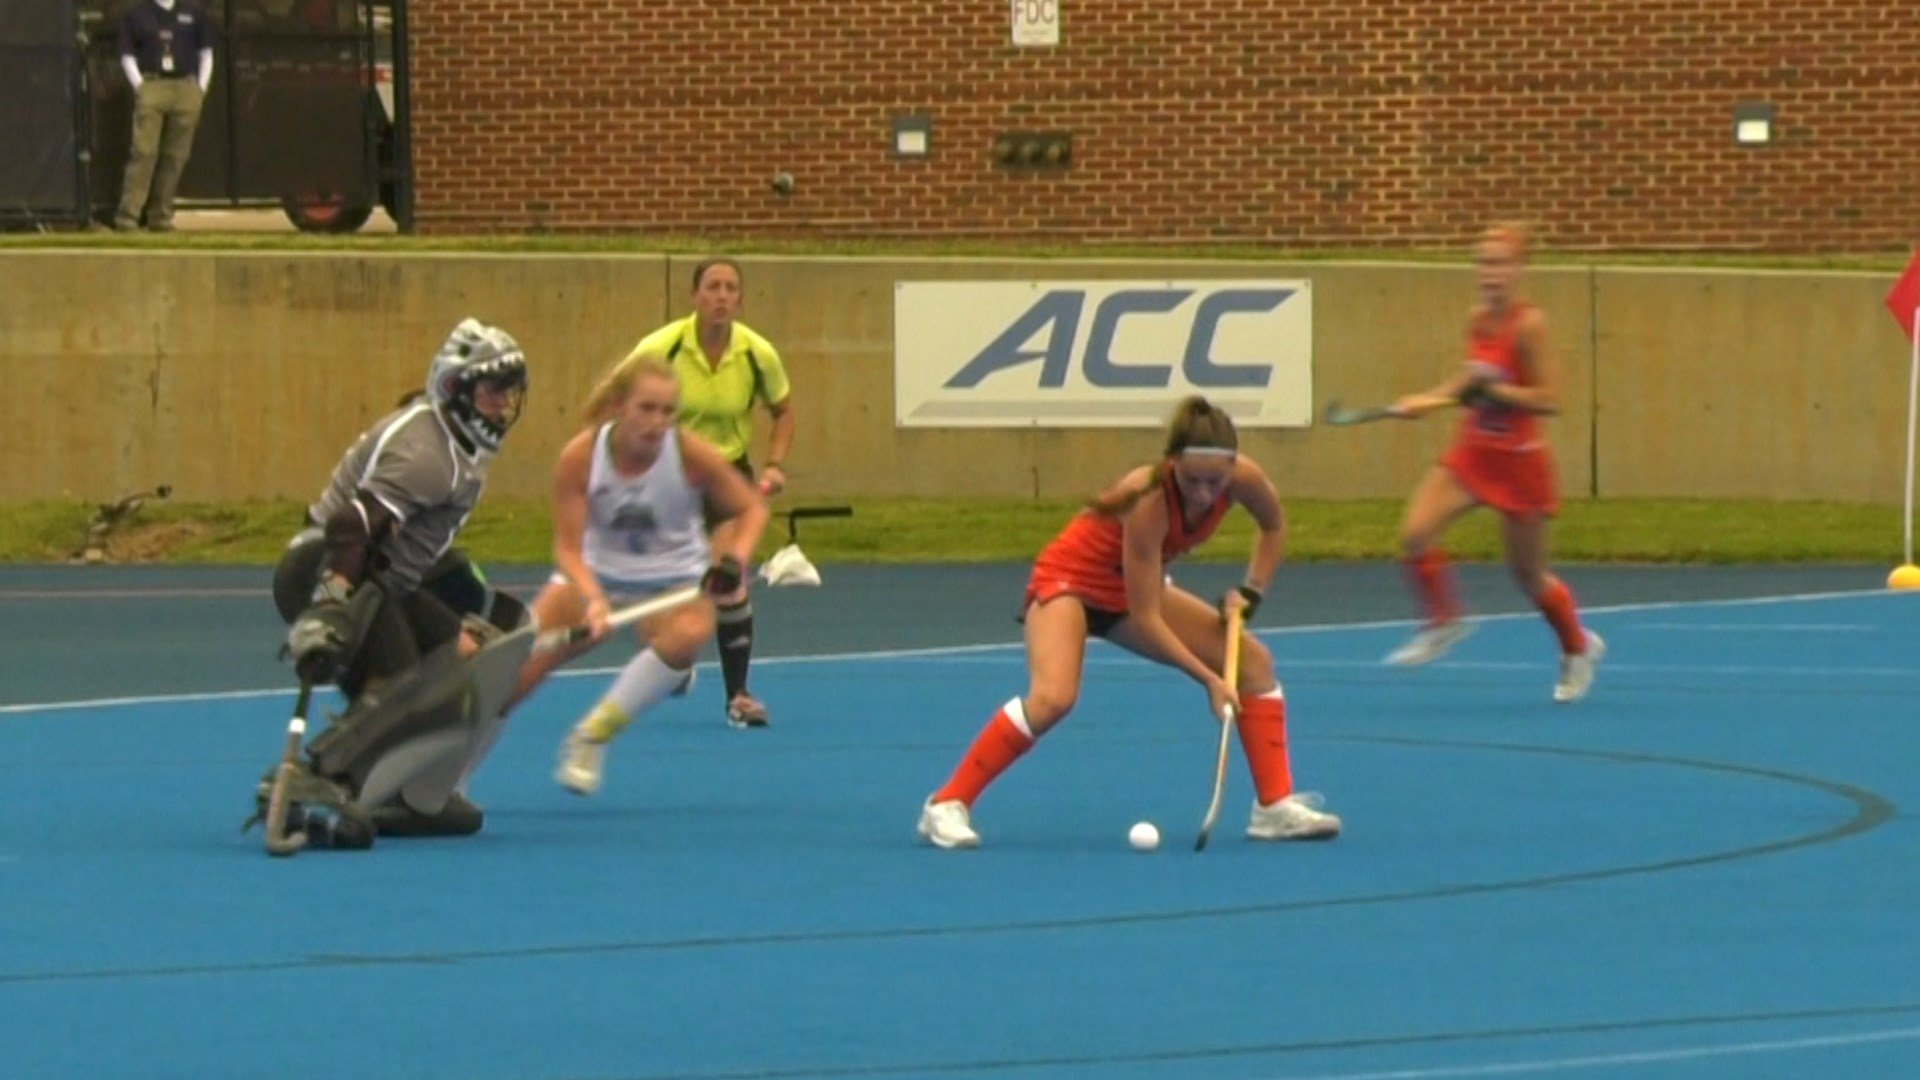 Annie McDonough scored the game-winning goal